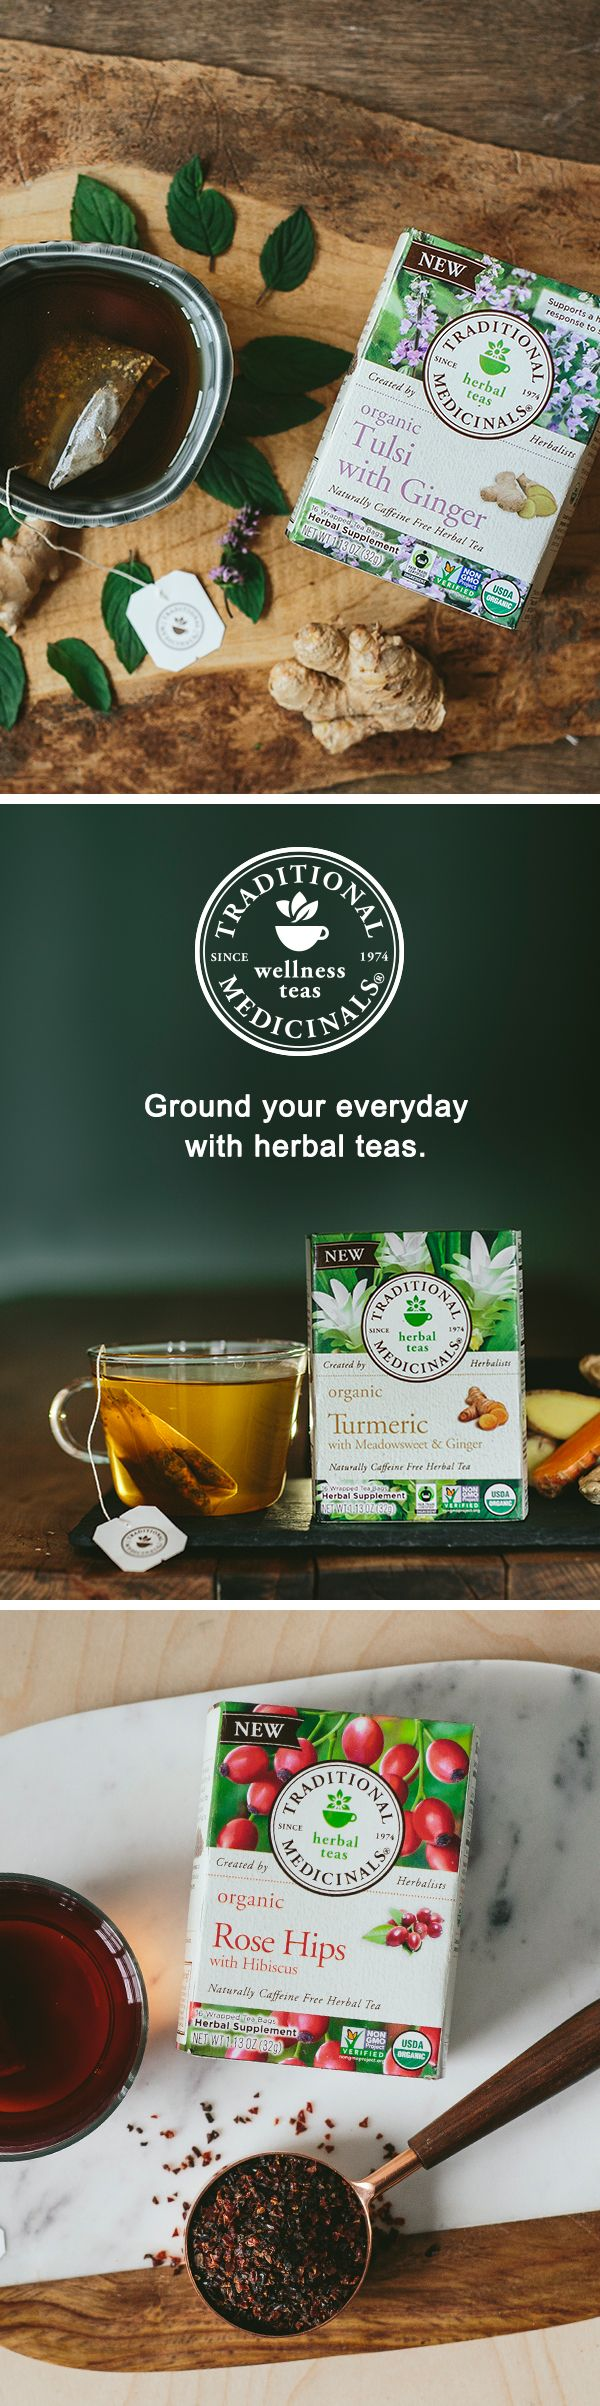 Love herbal teas? Explore our tea blends for every day — from Tulsi with Ginger that helps support a healthy response to stress without slowing you down to Roasted Dandelion Root that supports healthy digestion. And for post-workout rejuvenation, enjoy a warm cup of Turmeric with Meadowsweet & Ginger. Learn how to steep each cup of tea with responsibly sourced herbal medicine.